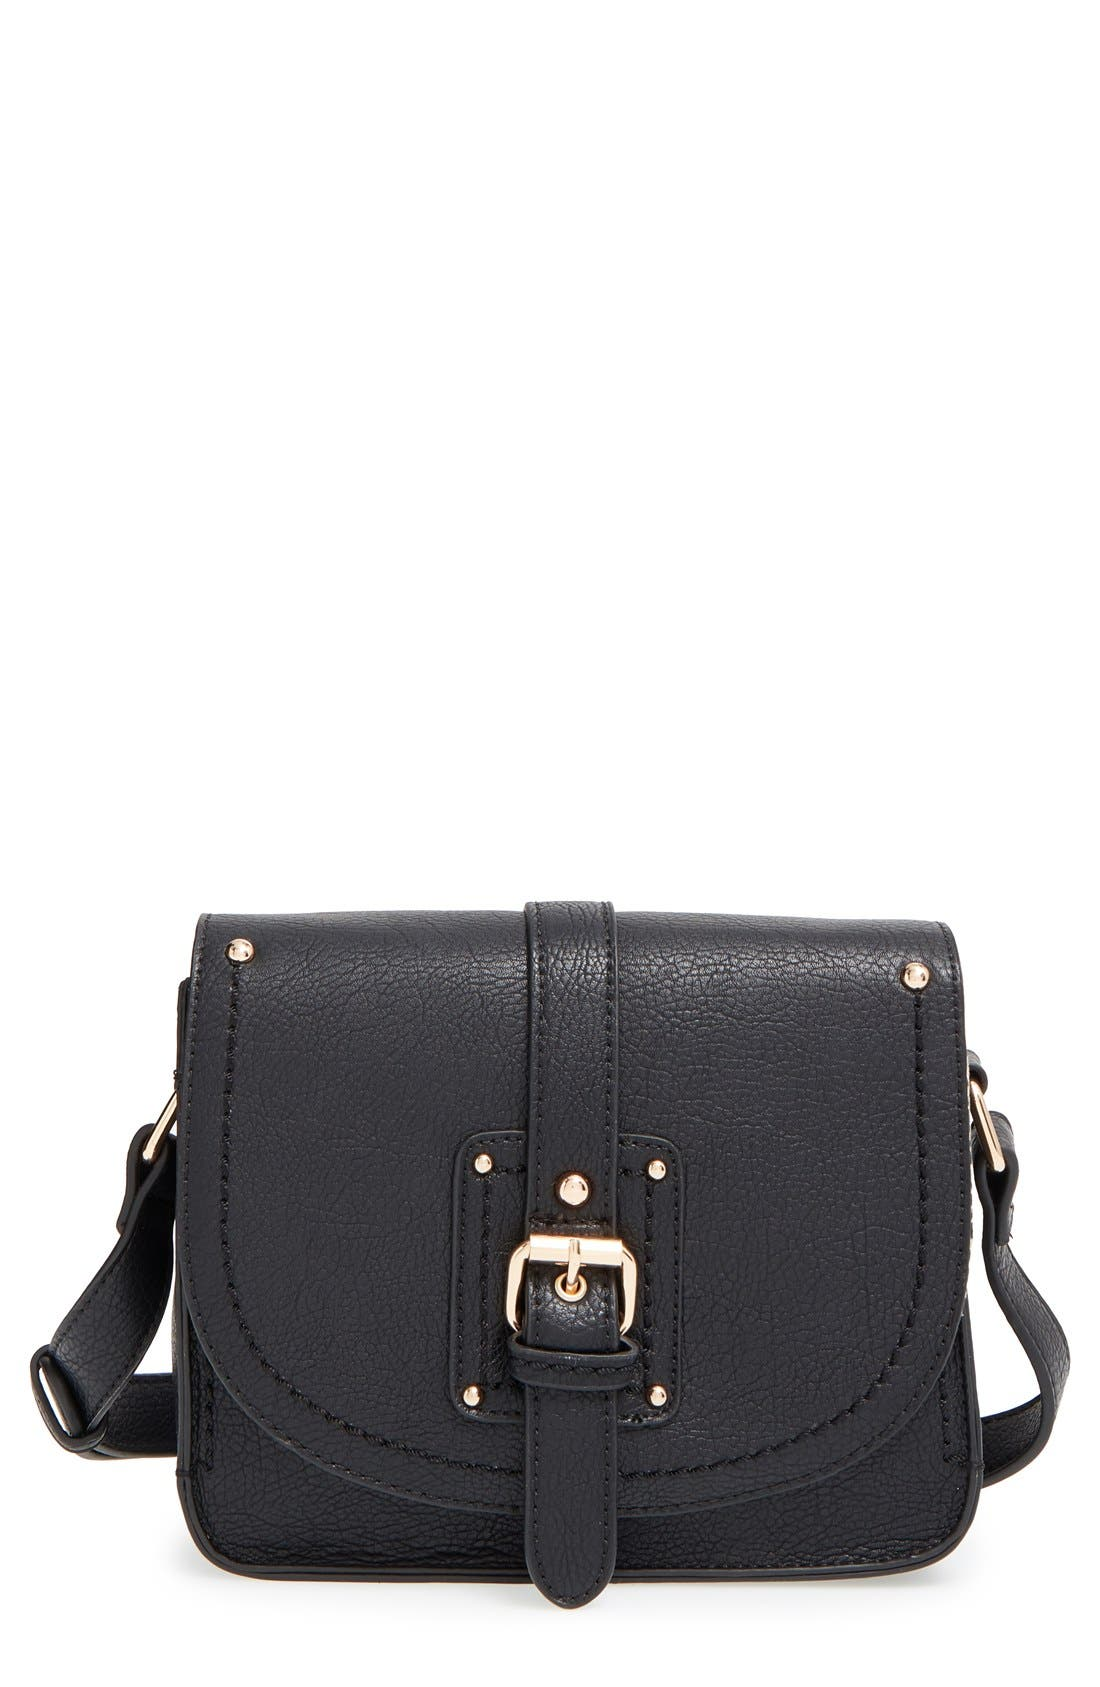 Alternate Image 1 Selected - Sole Society 'Saylah' Structured Faux Leather Crossbody Bag